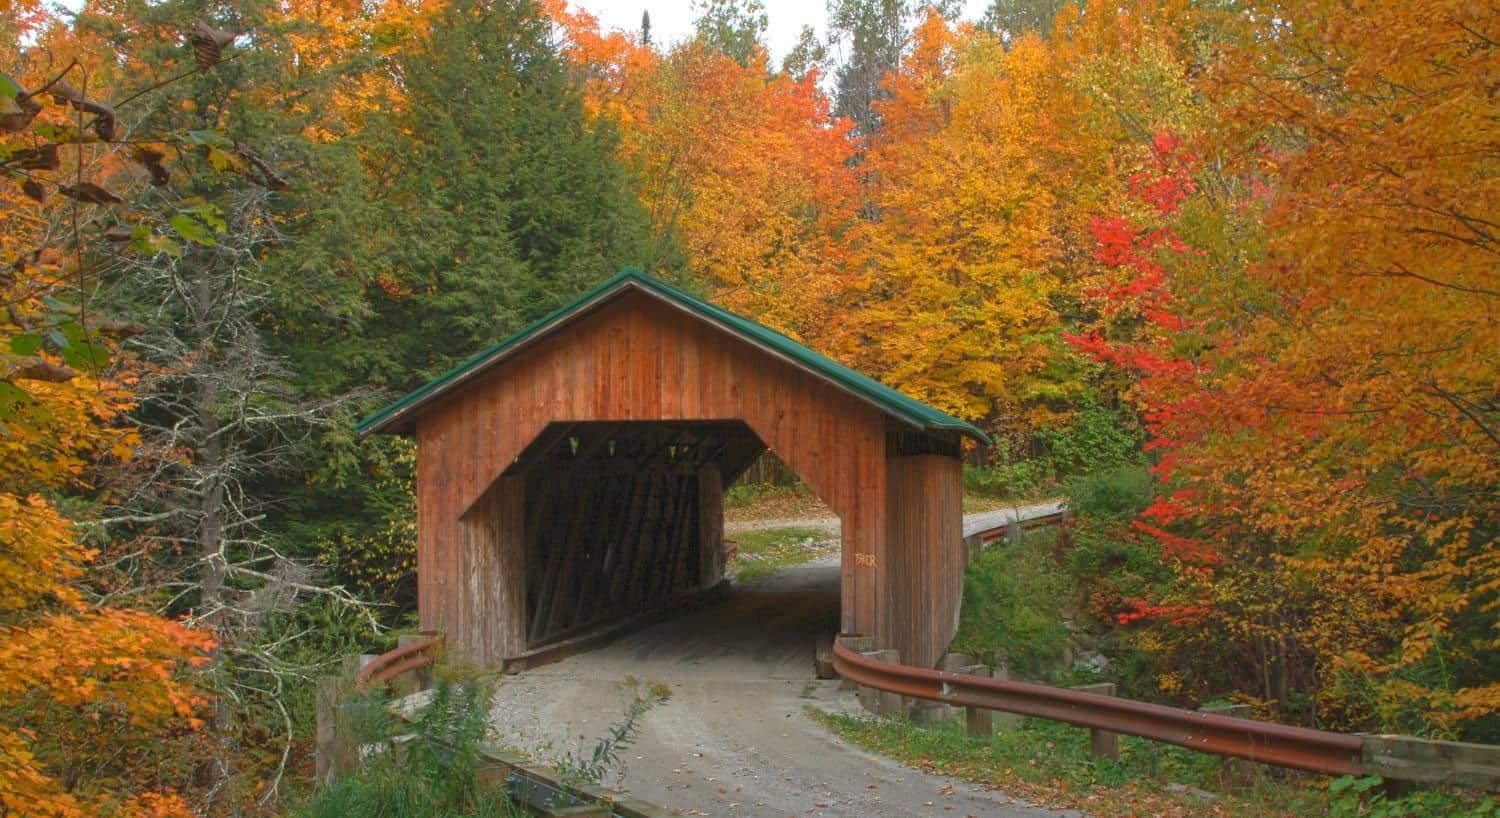 Wood covered bridge with green roof in the fall surrounded by trees with vibrant fall foliage